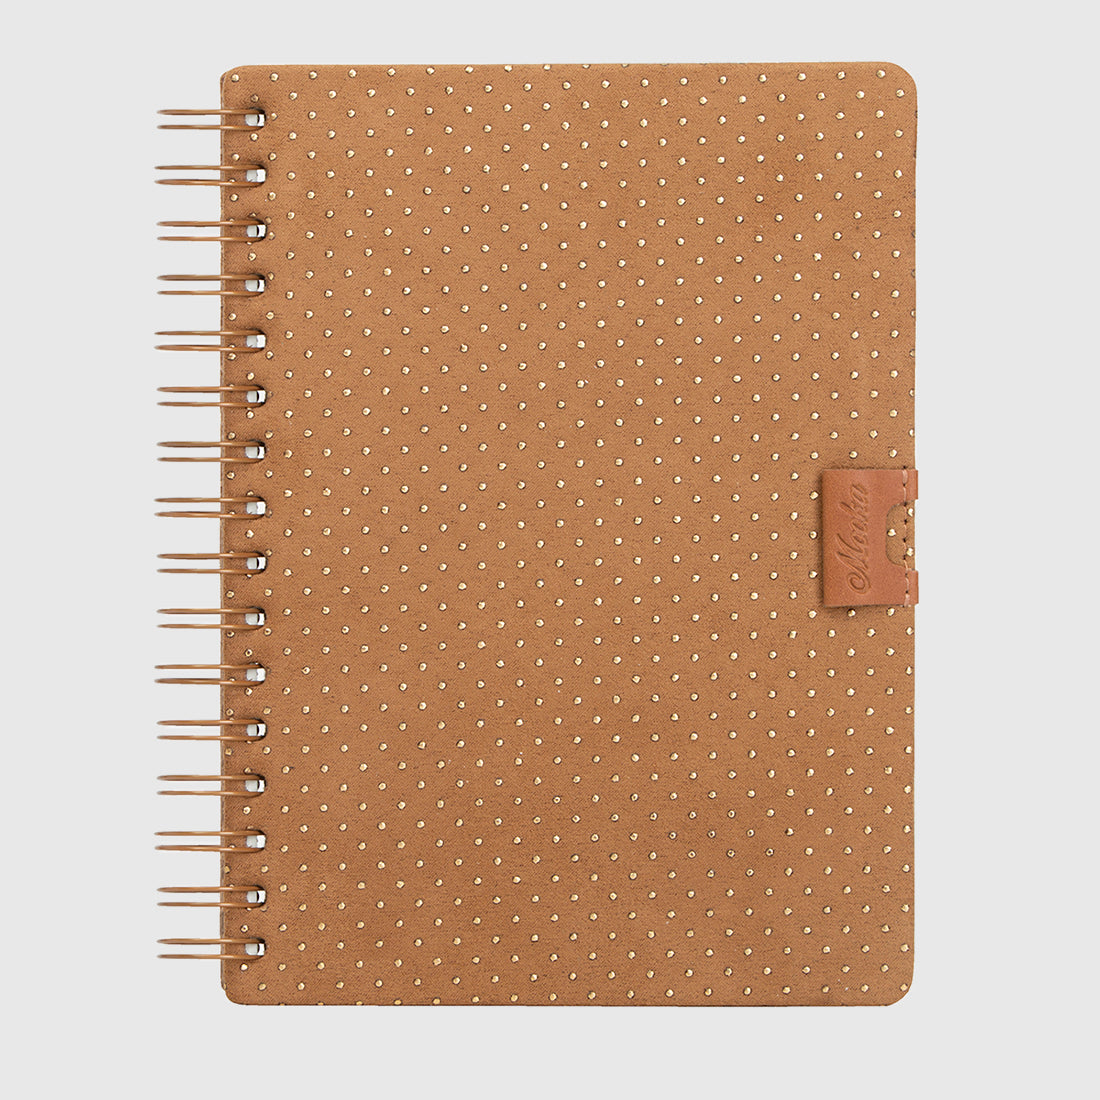 Glam Notebook Nobuk Gold Dots